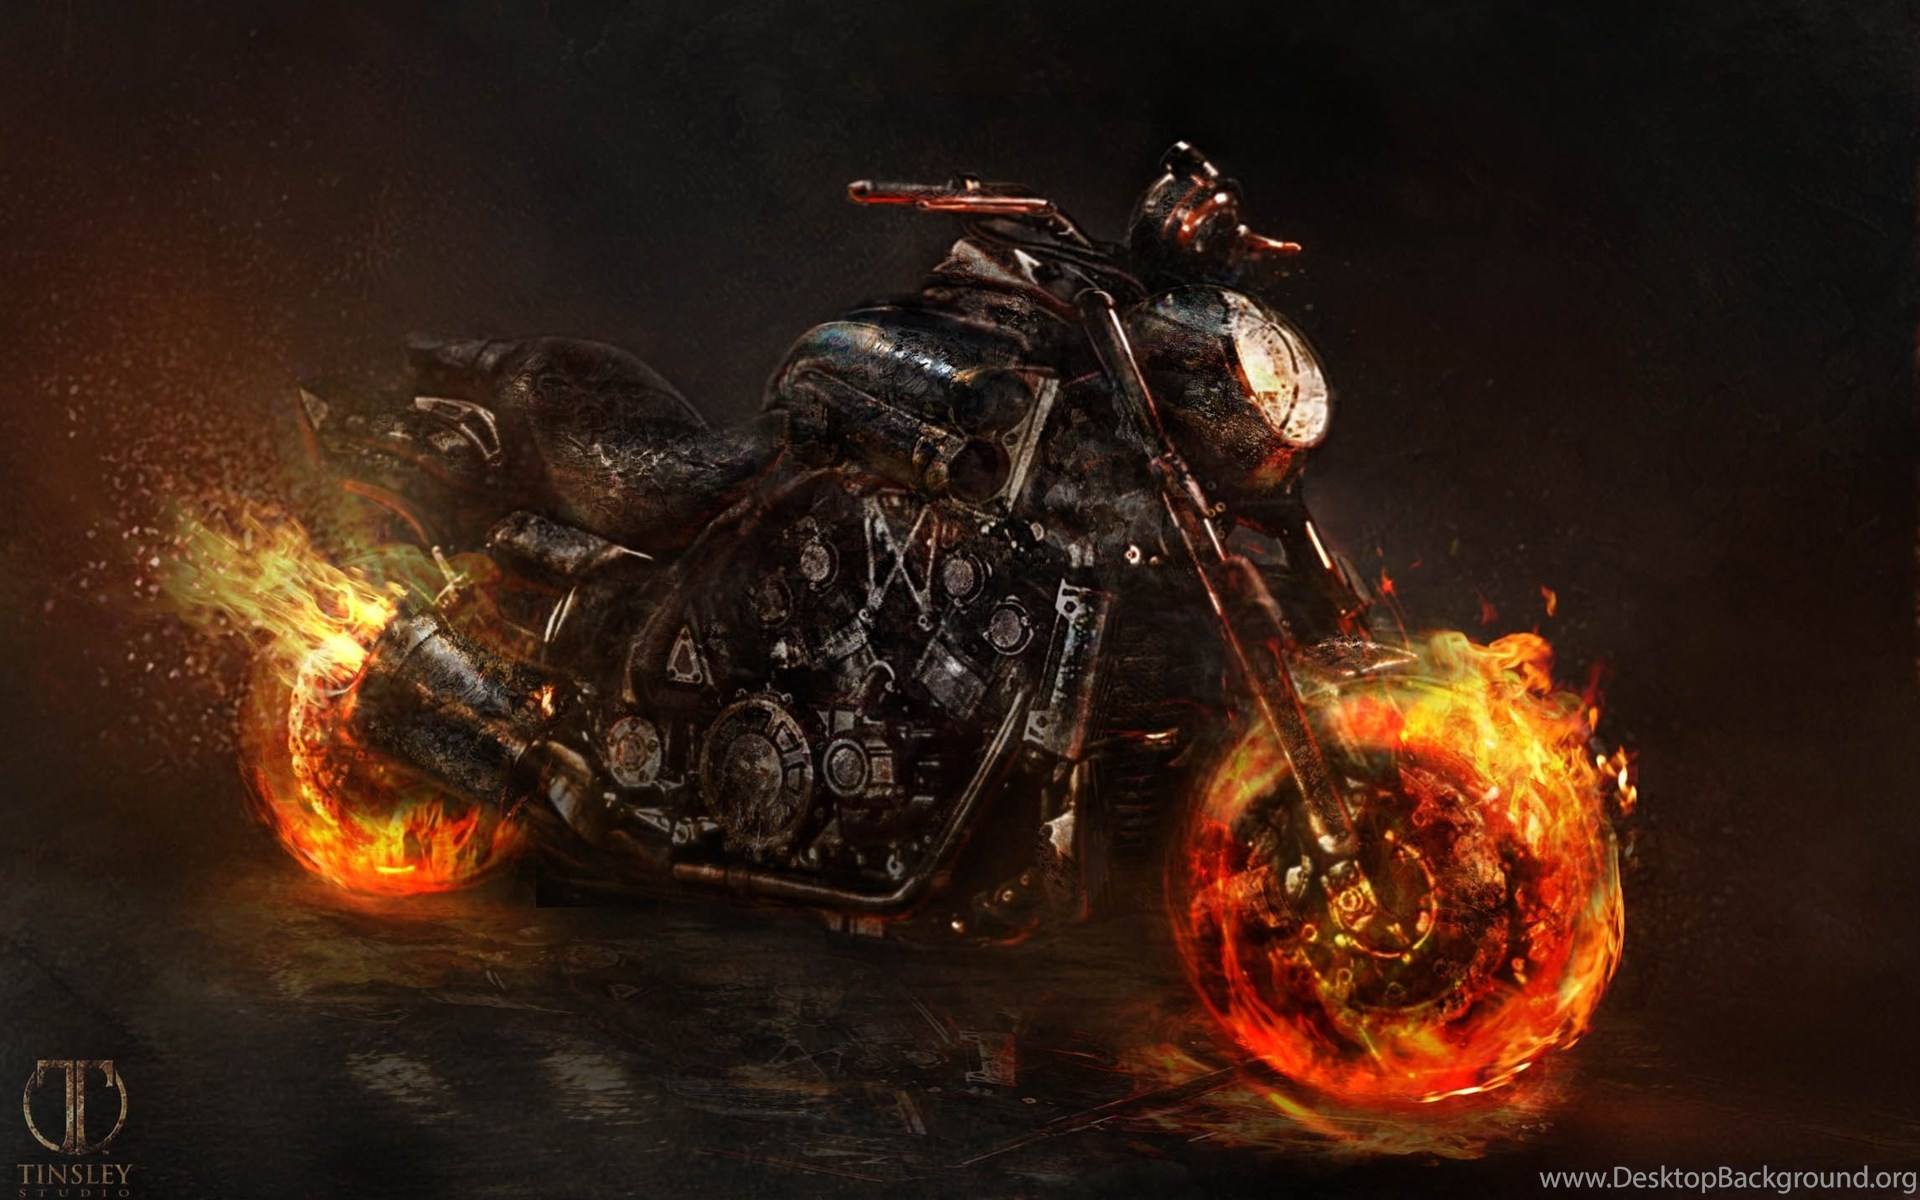 desktop wallpapers ghost rider 2 desktop background